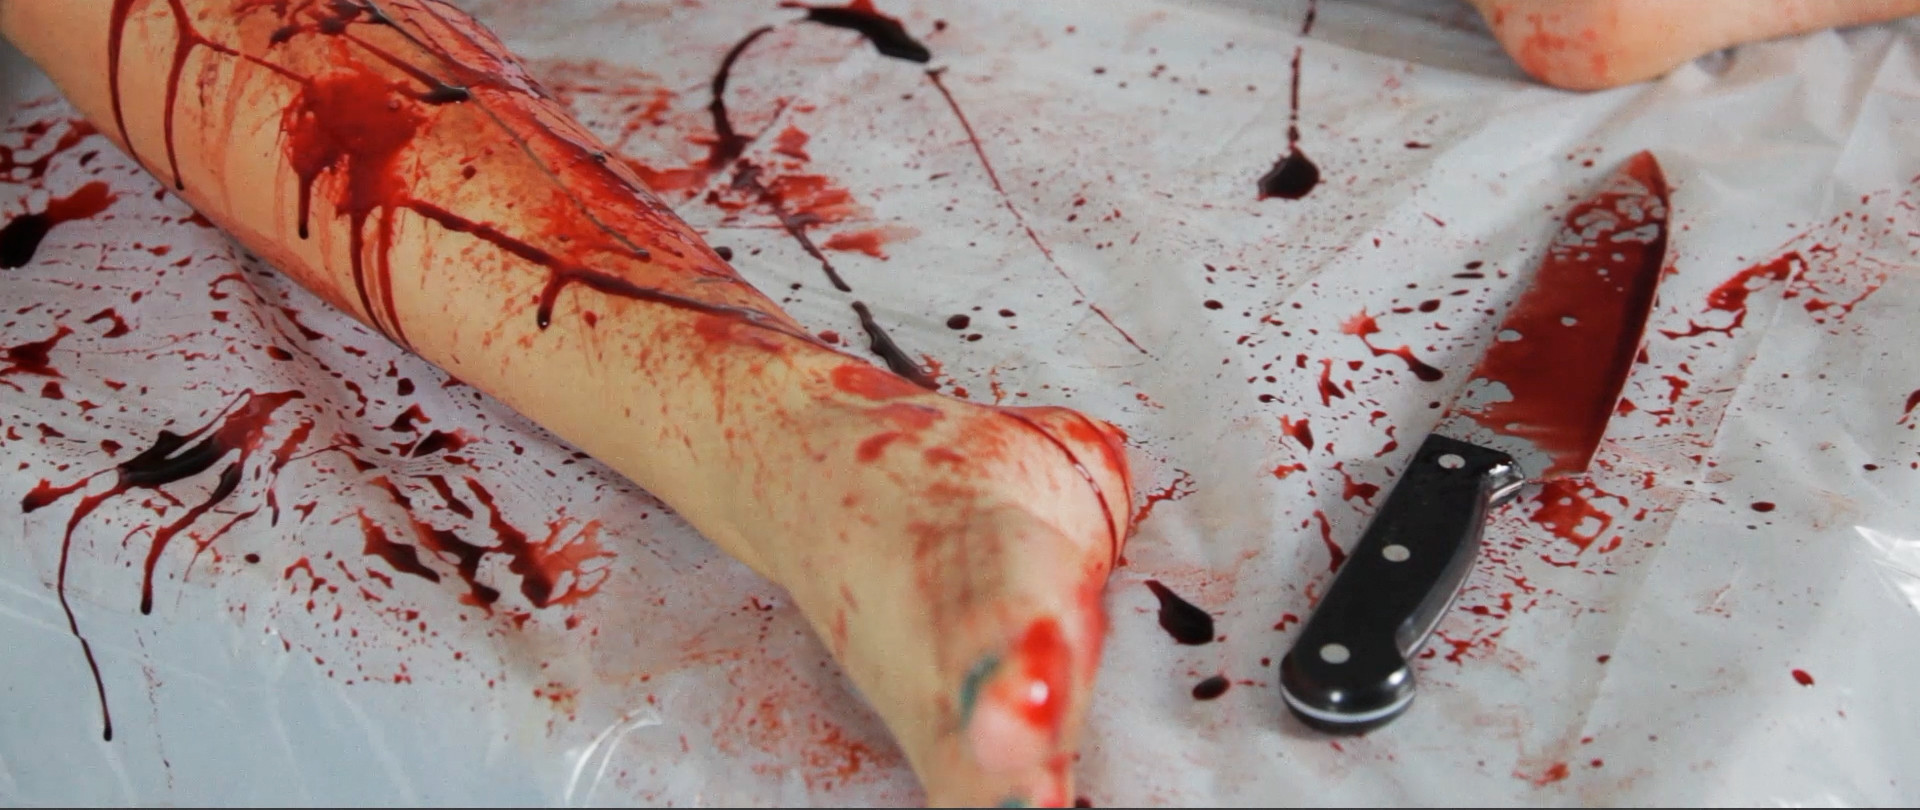 Plastic knife, with actor's leg and SFX makeup.